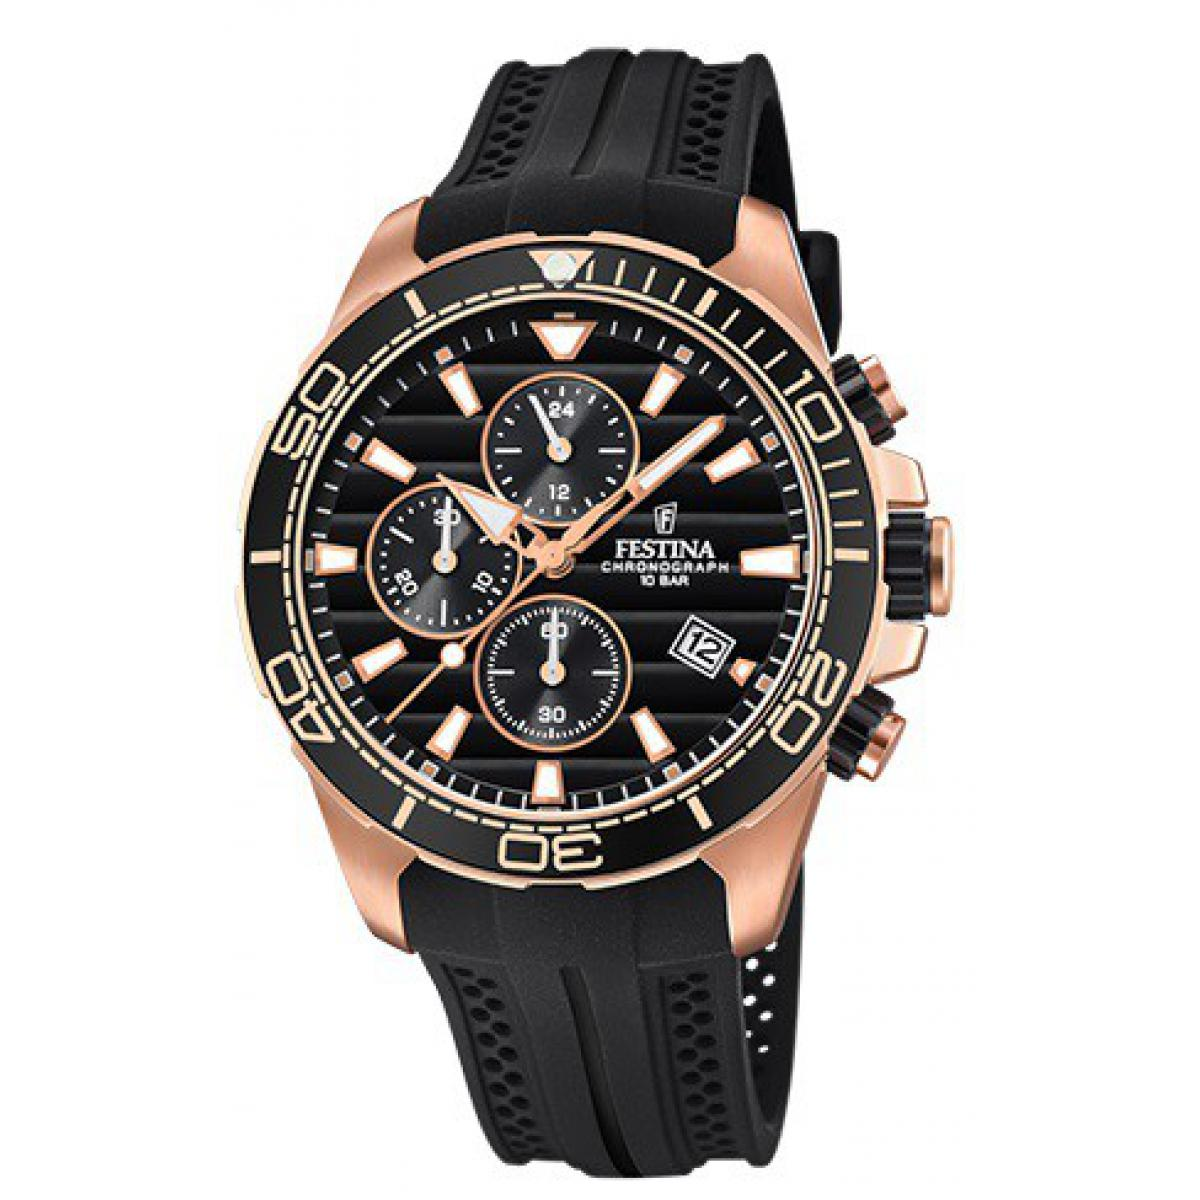 Montre Festina Originals F20367-1 - Montre Chronographe Dateur Noir Homme